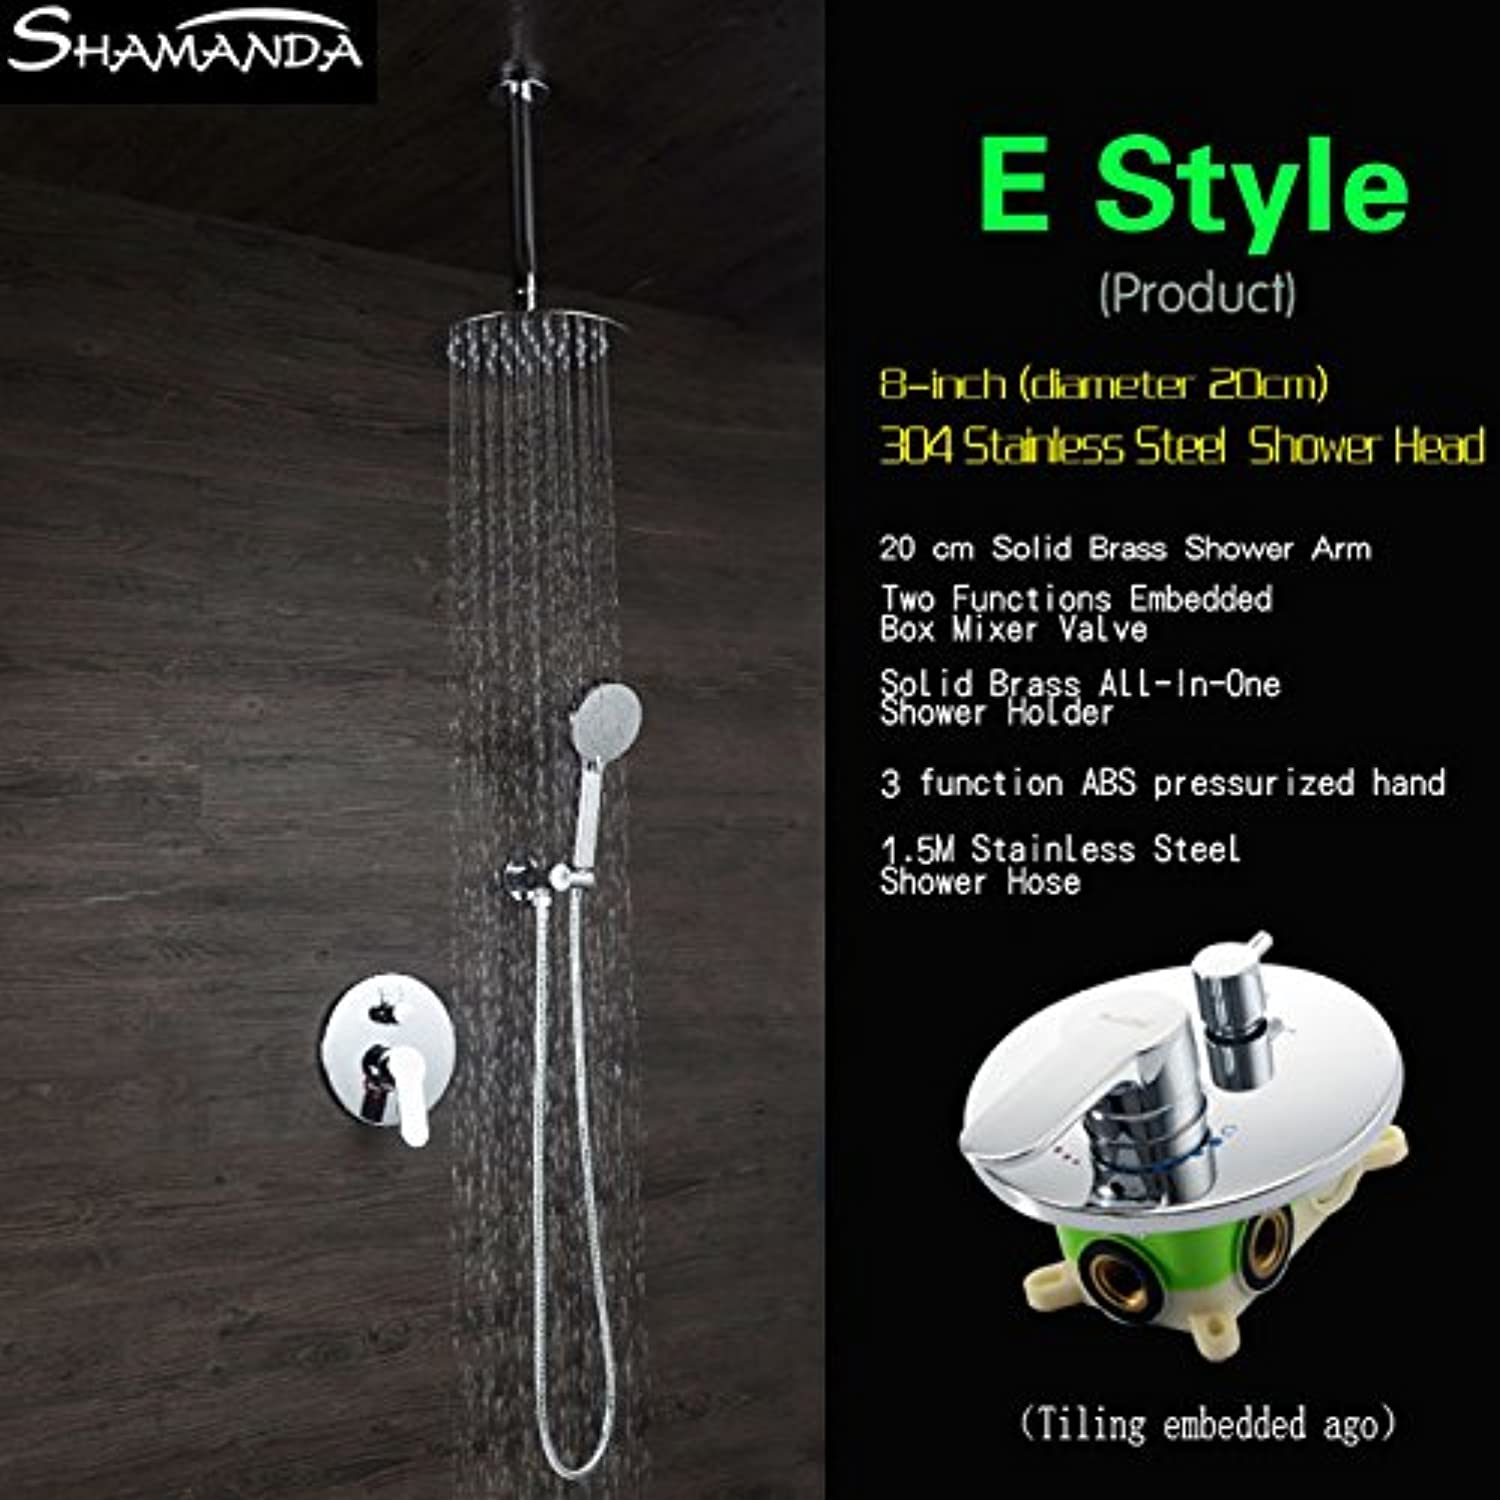 Luxury Concealed Round Two Functions Embedded Box Mixer Valve Shower Set with Various Styles Ceiling Shower Head and Hand Shower,E Style